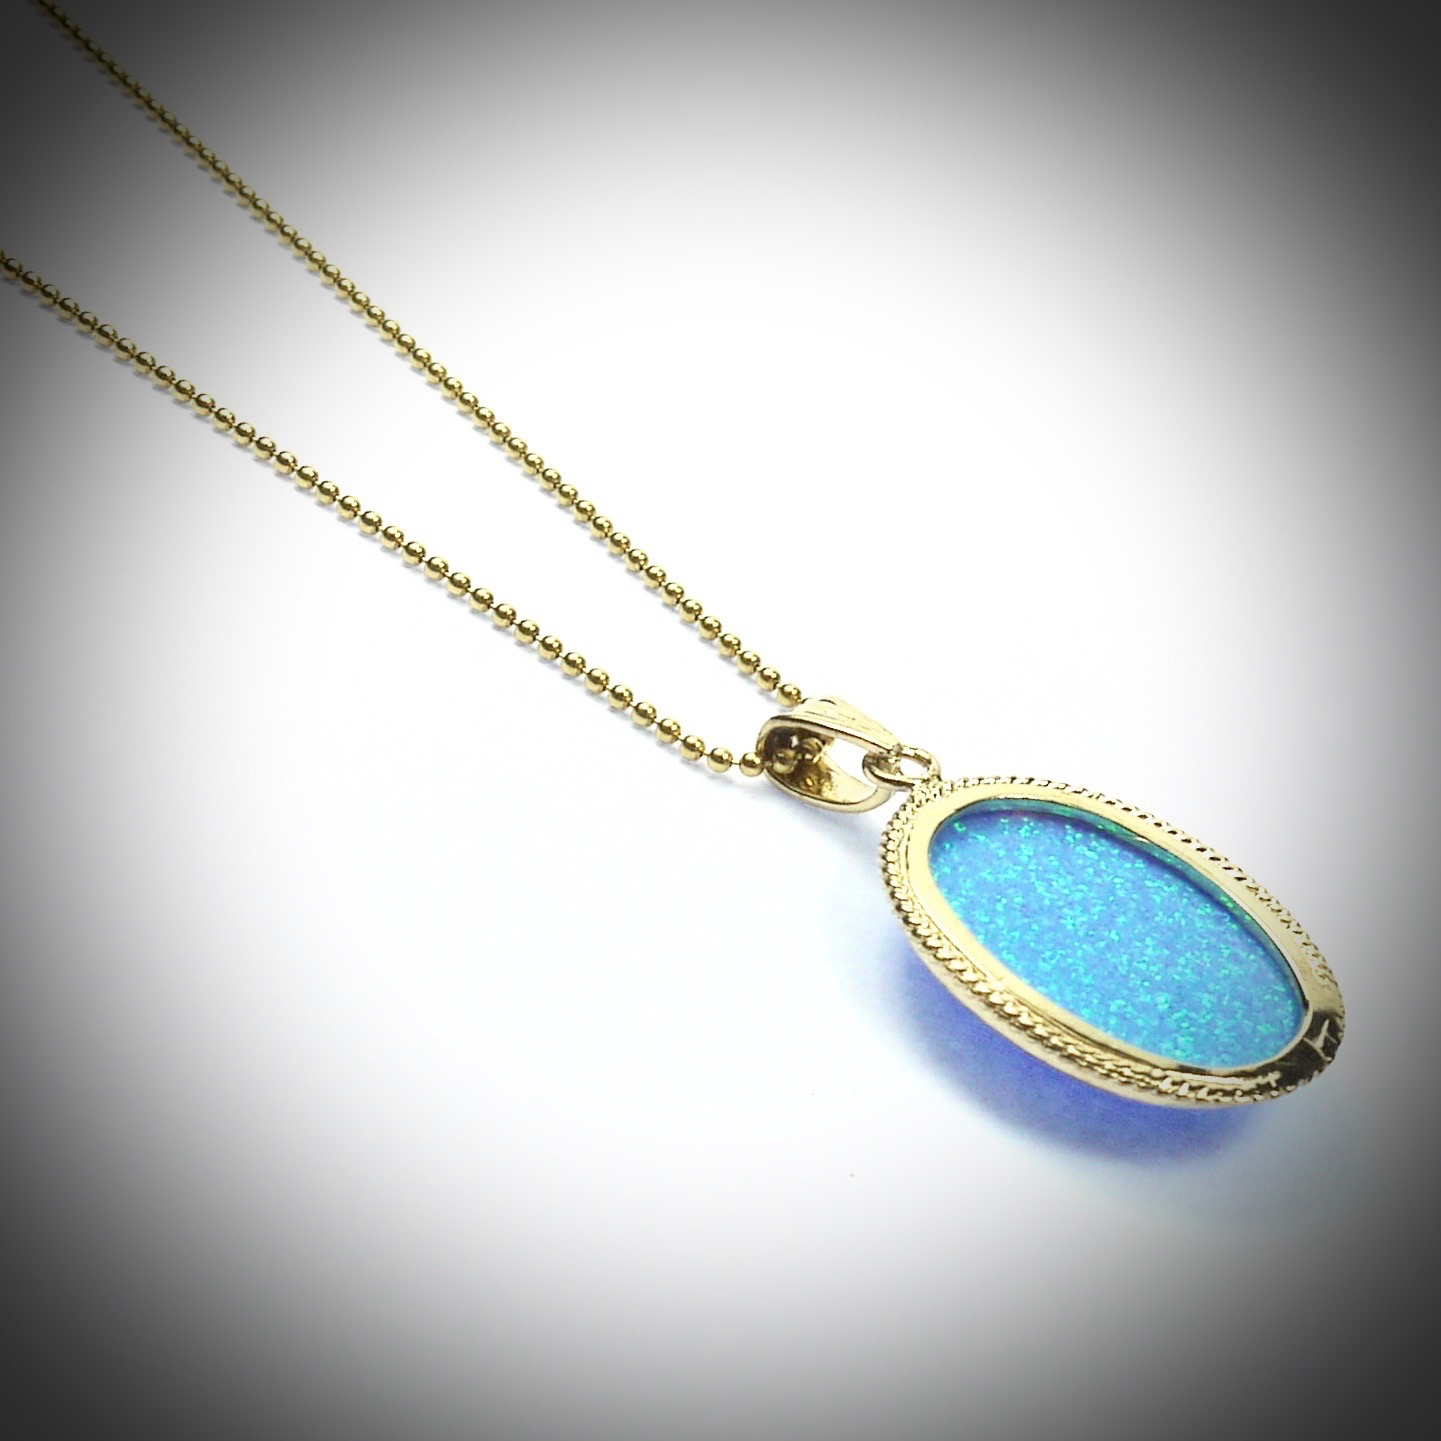 pendant necklaces sterling necklace blue heart women love wholesale opal jewelry pendants fashion picture product for family silver